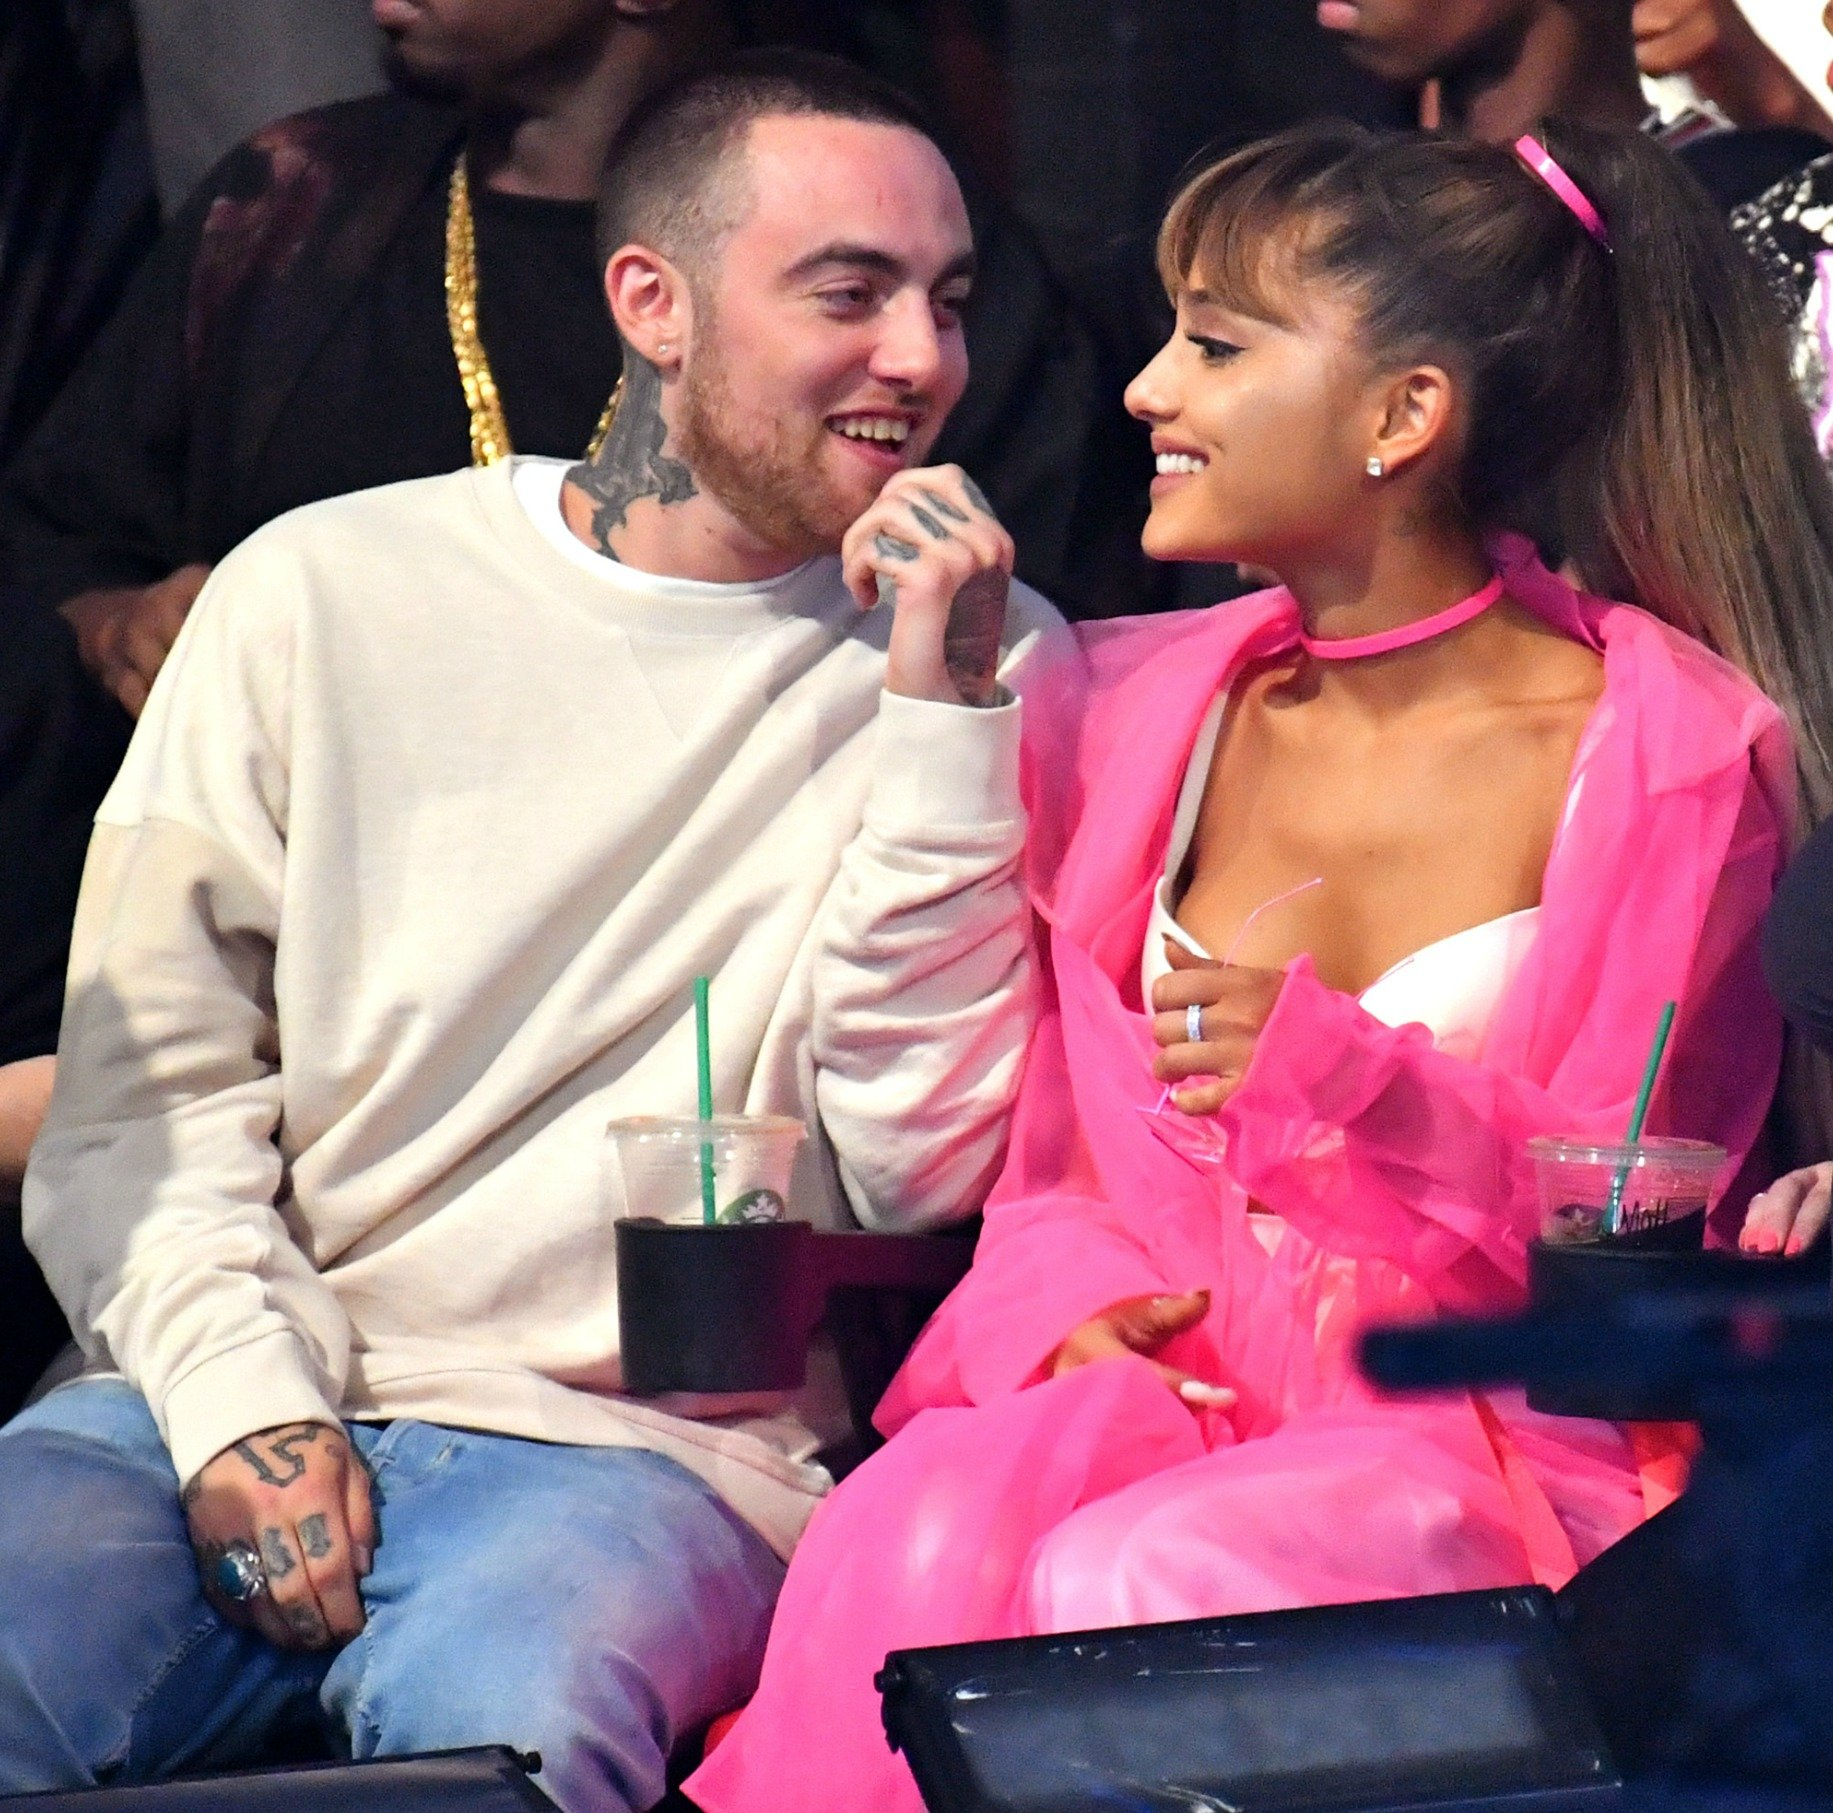 Mac Miller and Ariana Grande attend the 2016 MTV Video Music Awards at Madison Square Garden on August 28, 2016 in New York City